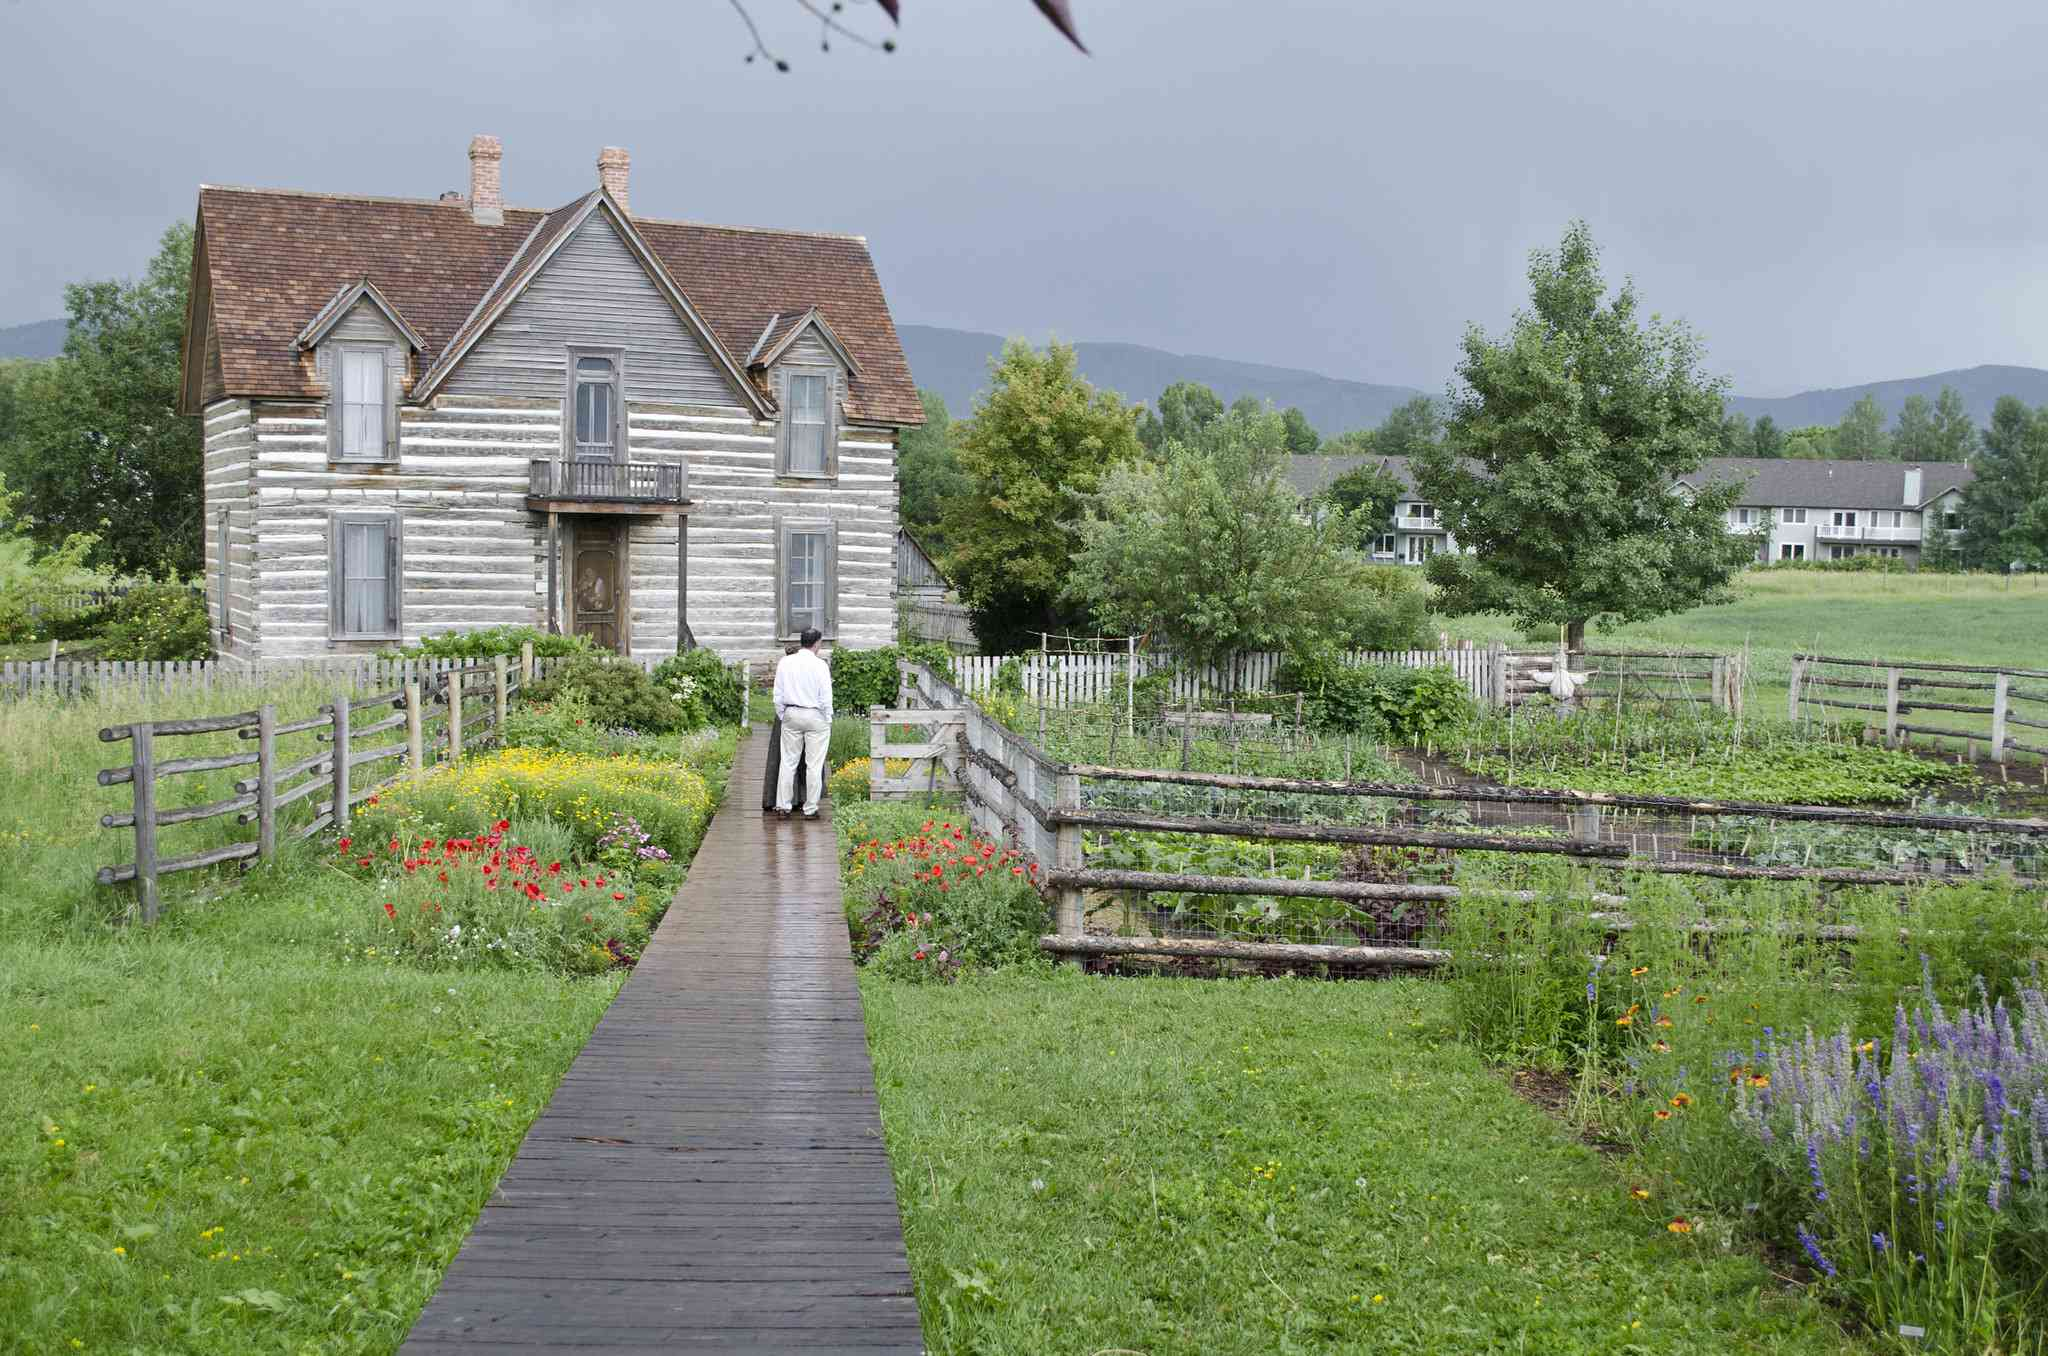 A couple look at the garden in front of a restored farmhouse